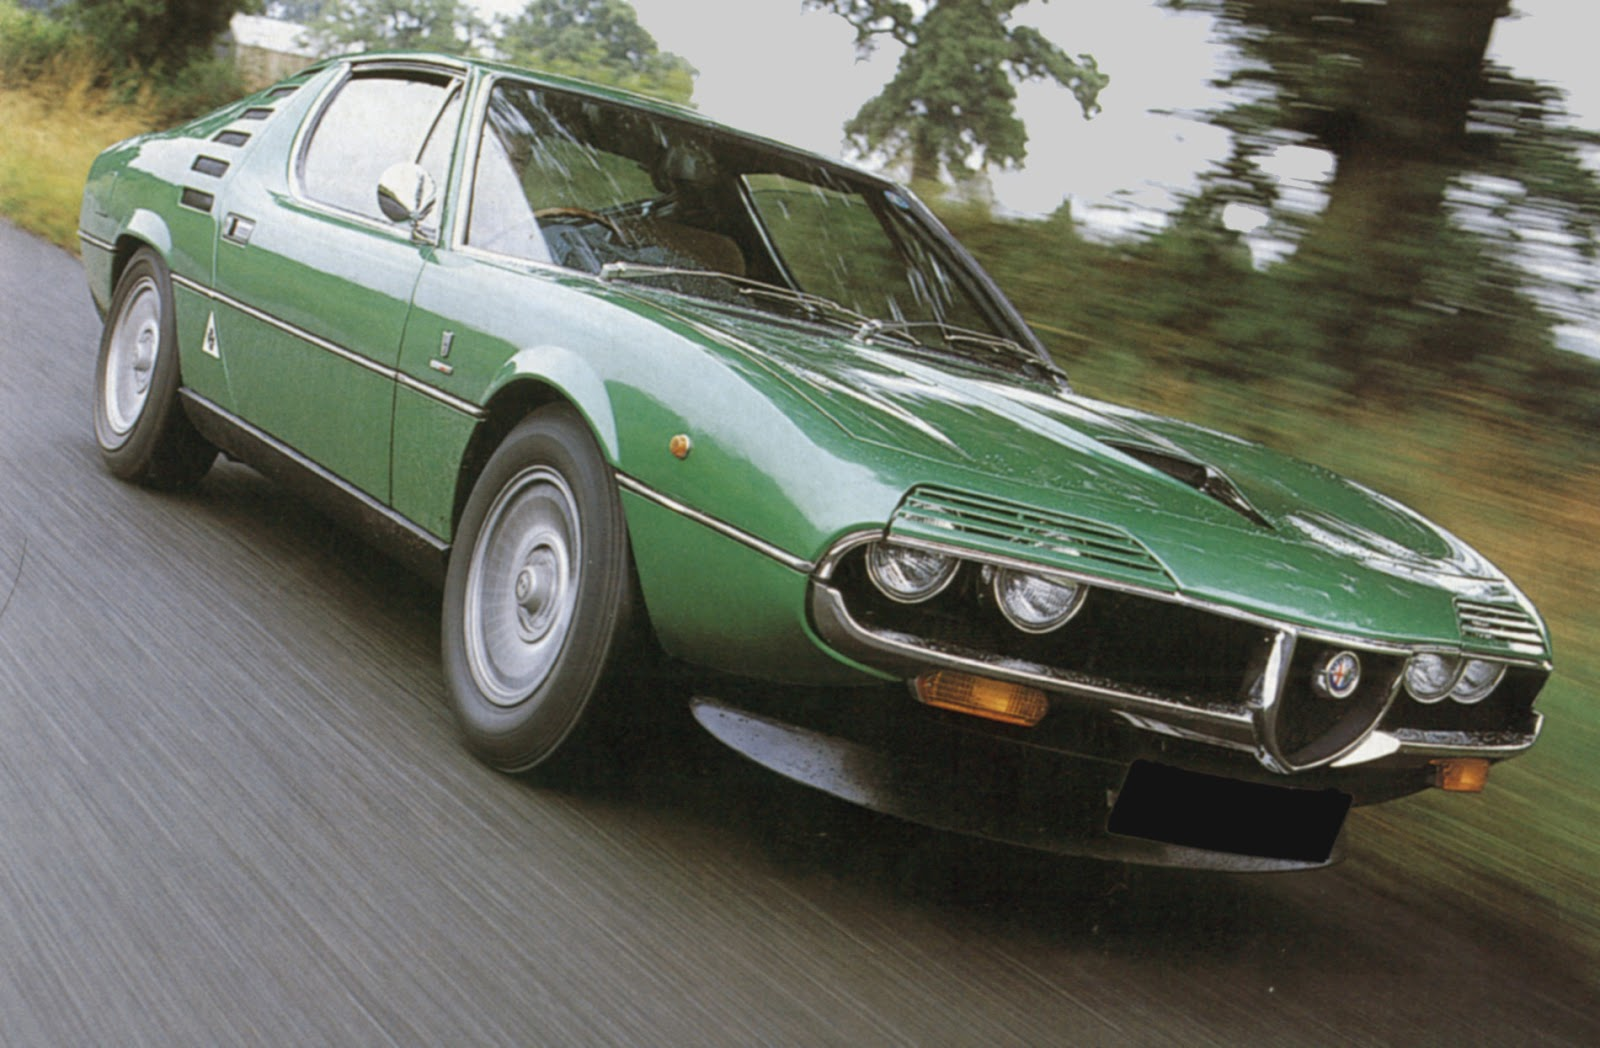 Red Hot Italians Alfa Romeo Montreal 1970 1977 Phscollectorcarworld Ignition Timing There Were Few Options Available Air Conditioning Power Windows And Metallic Paint